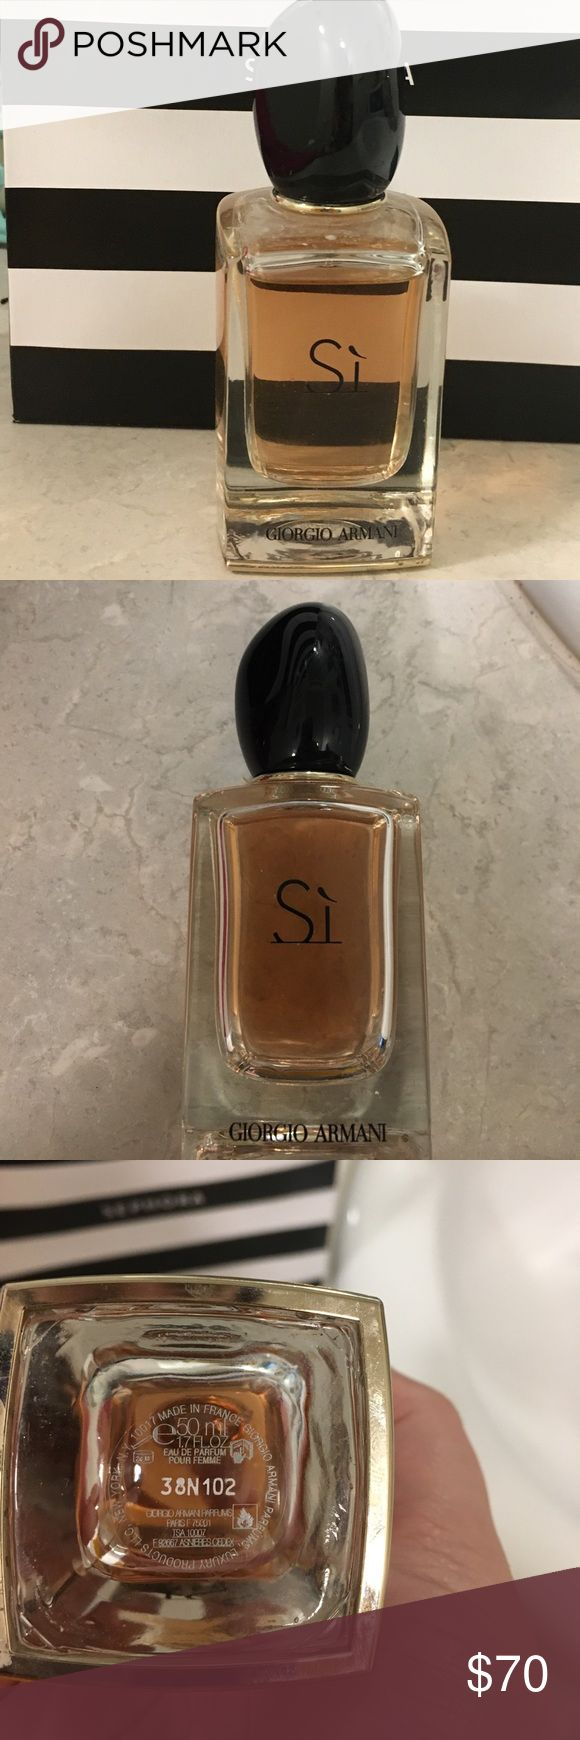 Giorgio Armani Sí Perfume 1.7 Fl. Oz. Giorgio Armani Sí Perfume - 1.7 Fl oz - retails for $92 - used only a few times - love the smell but isn't my go to - no longer have the box   Sì Eau de Parfum is a tribute to modern femininity, an irresistible combination of grace, strength, and independent spirit. A modern chypre reinvented, Sì opens with deep blackcurrant nectar that softly recedes to airy florals. A base of musky blond wood adds lightness while grounding the fragrance for a…